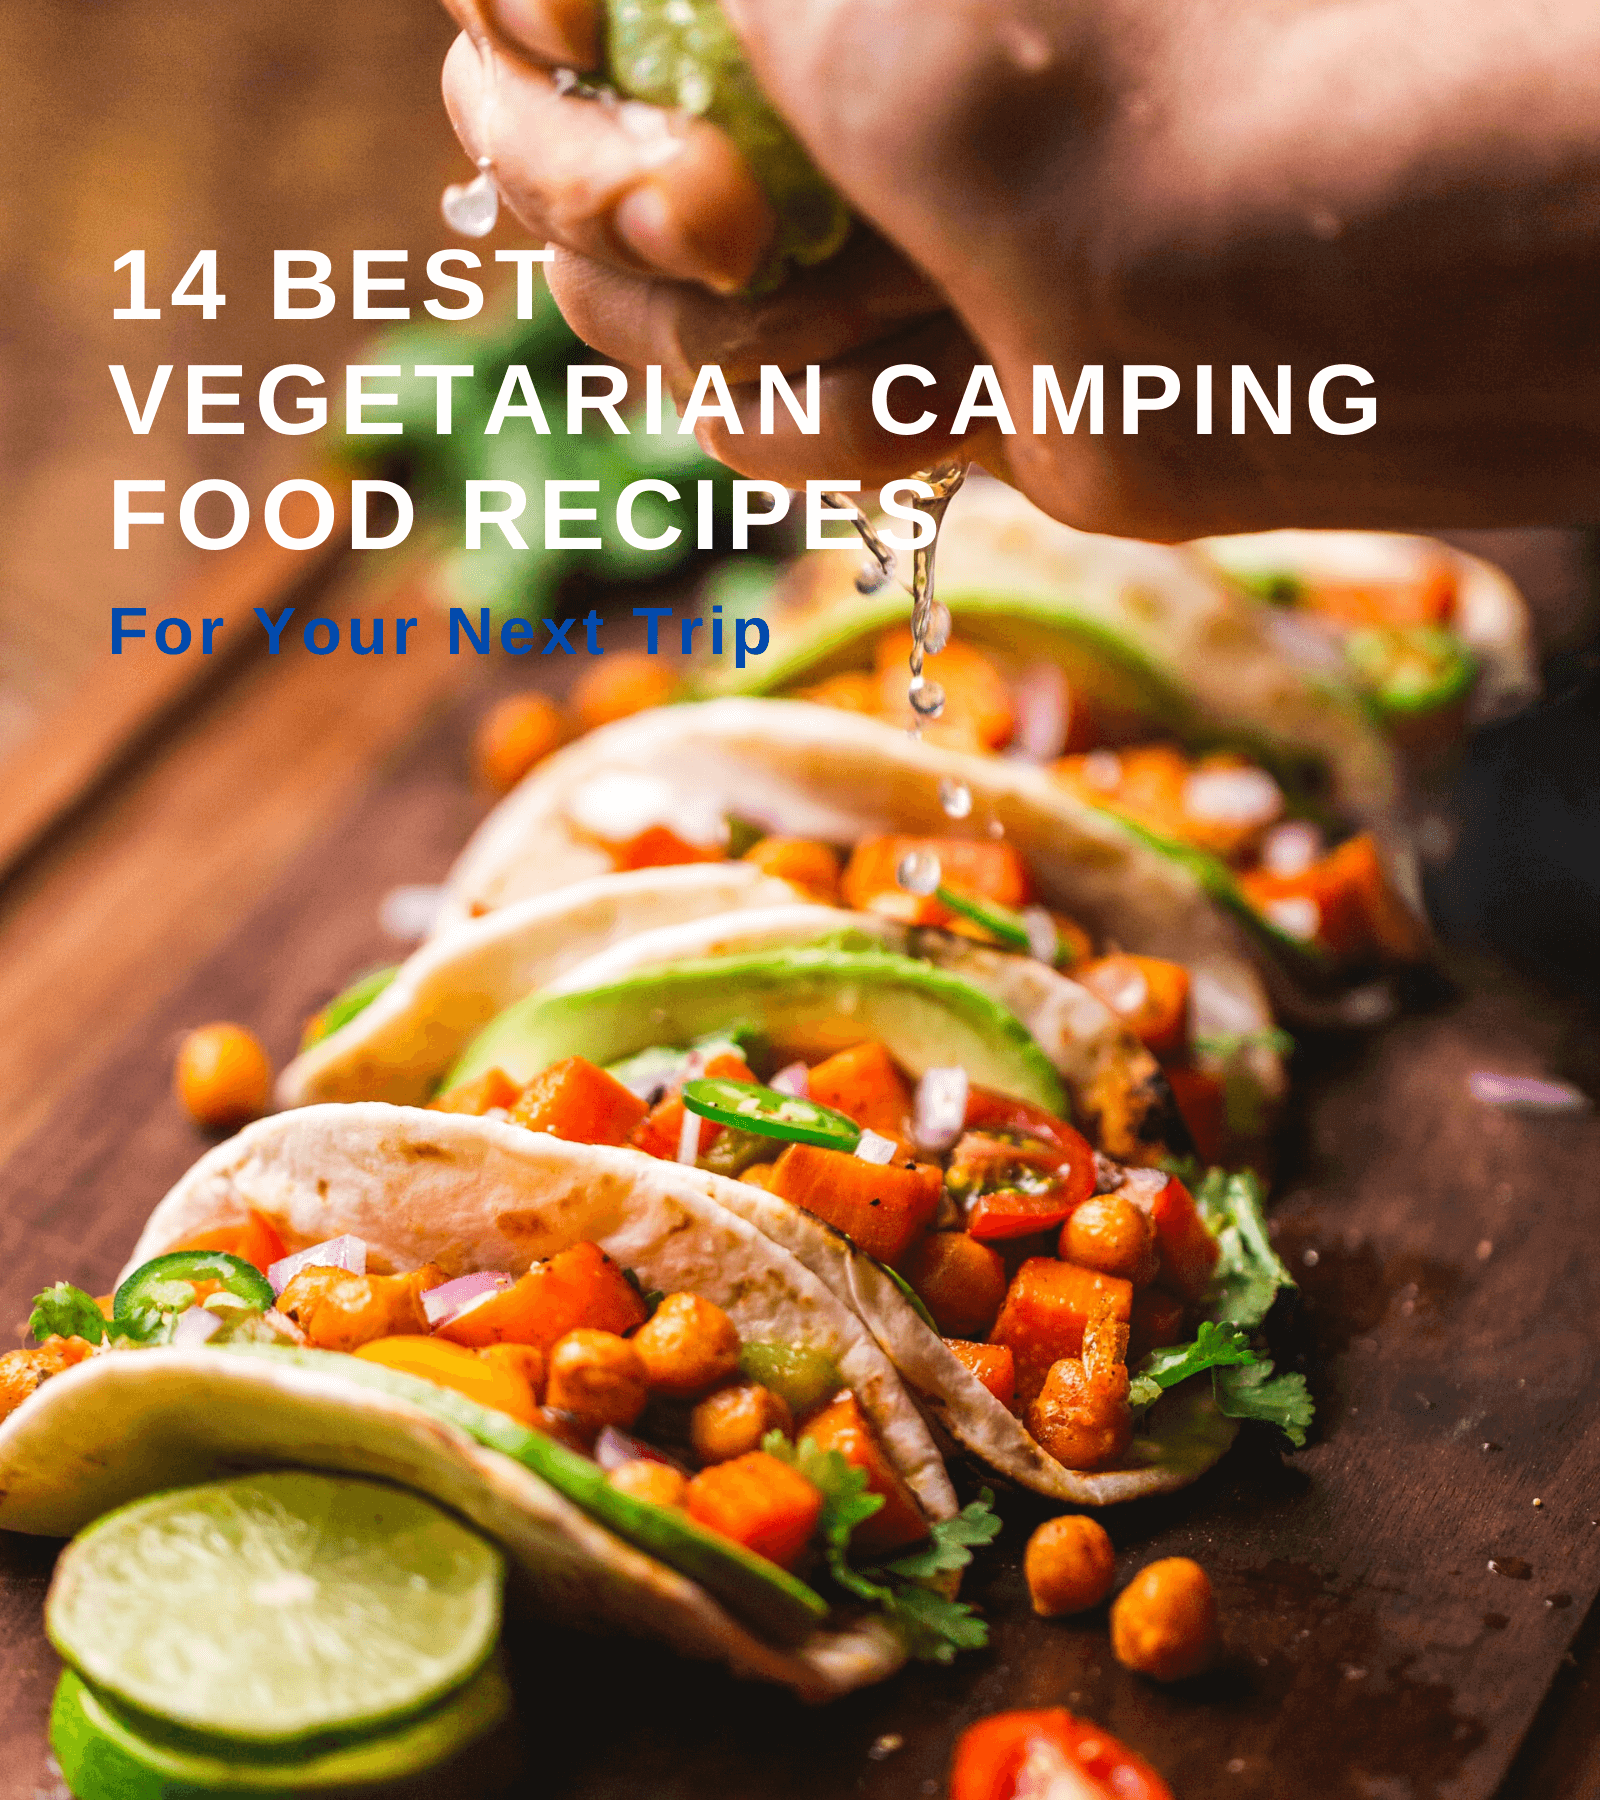 14 Best Vegetarian Camping Food Recipes For Your Next Trip